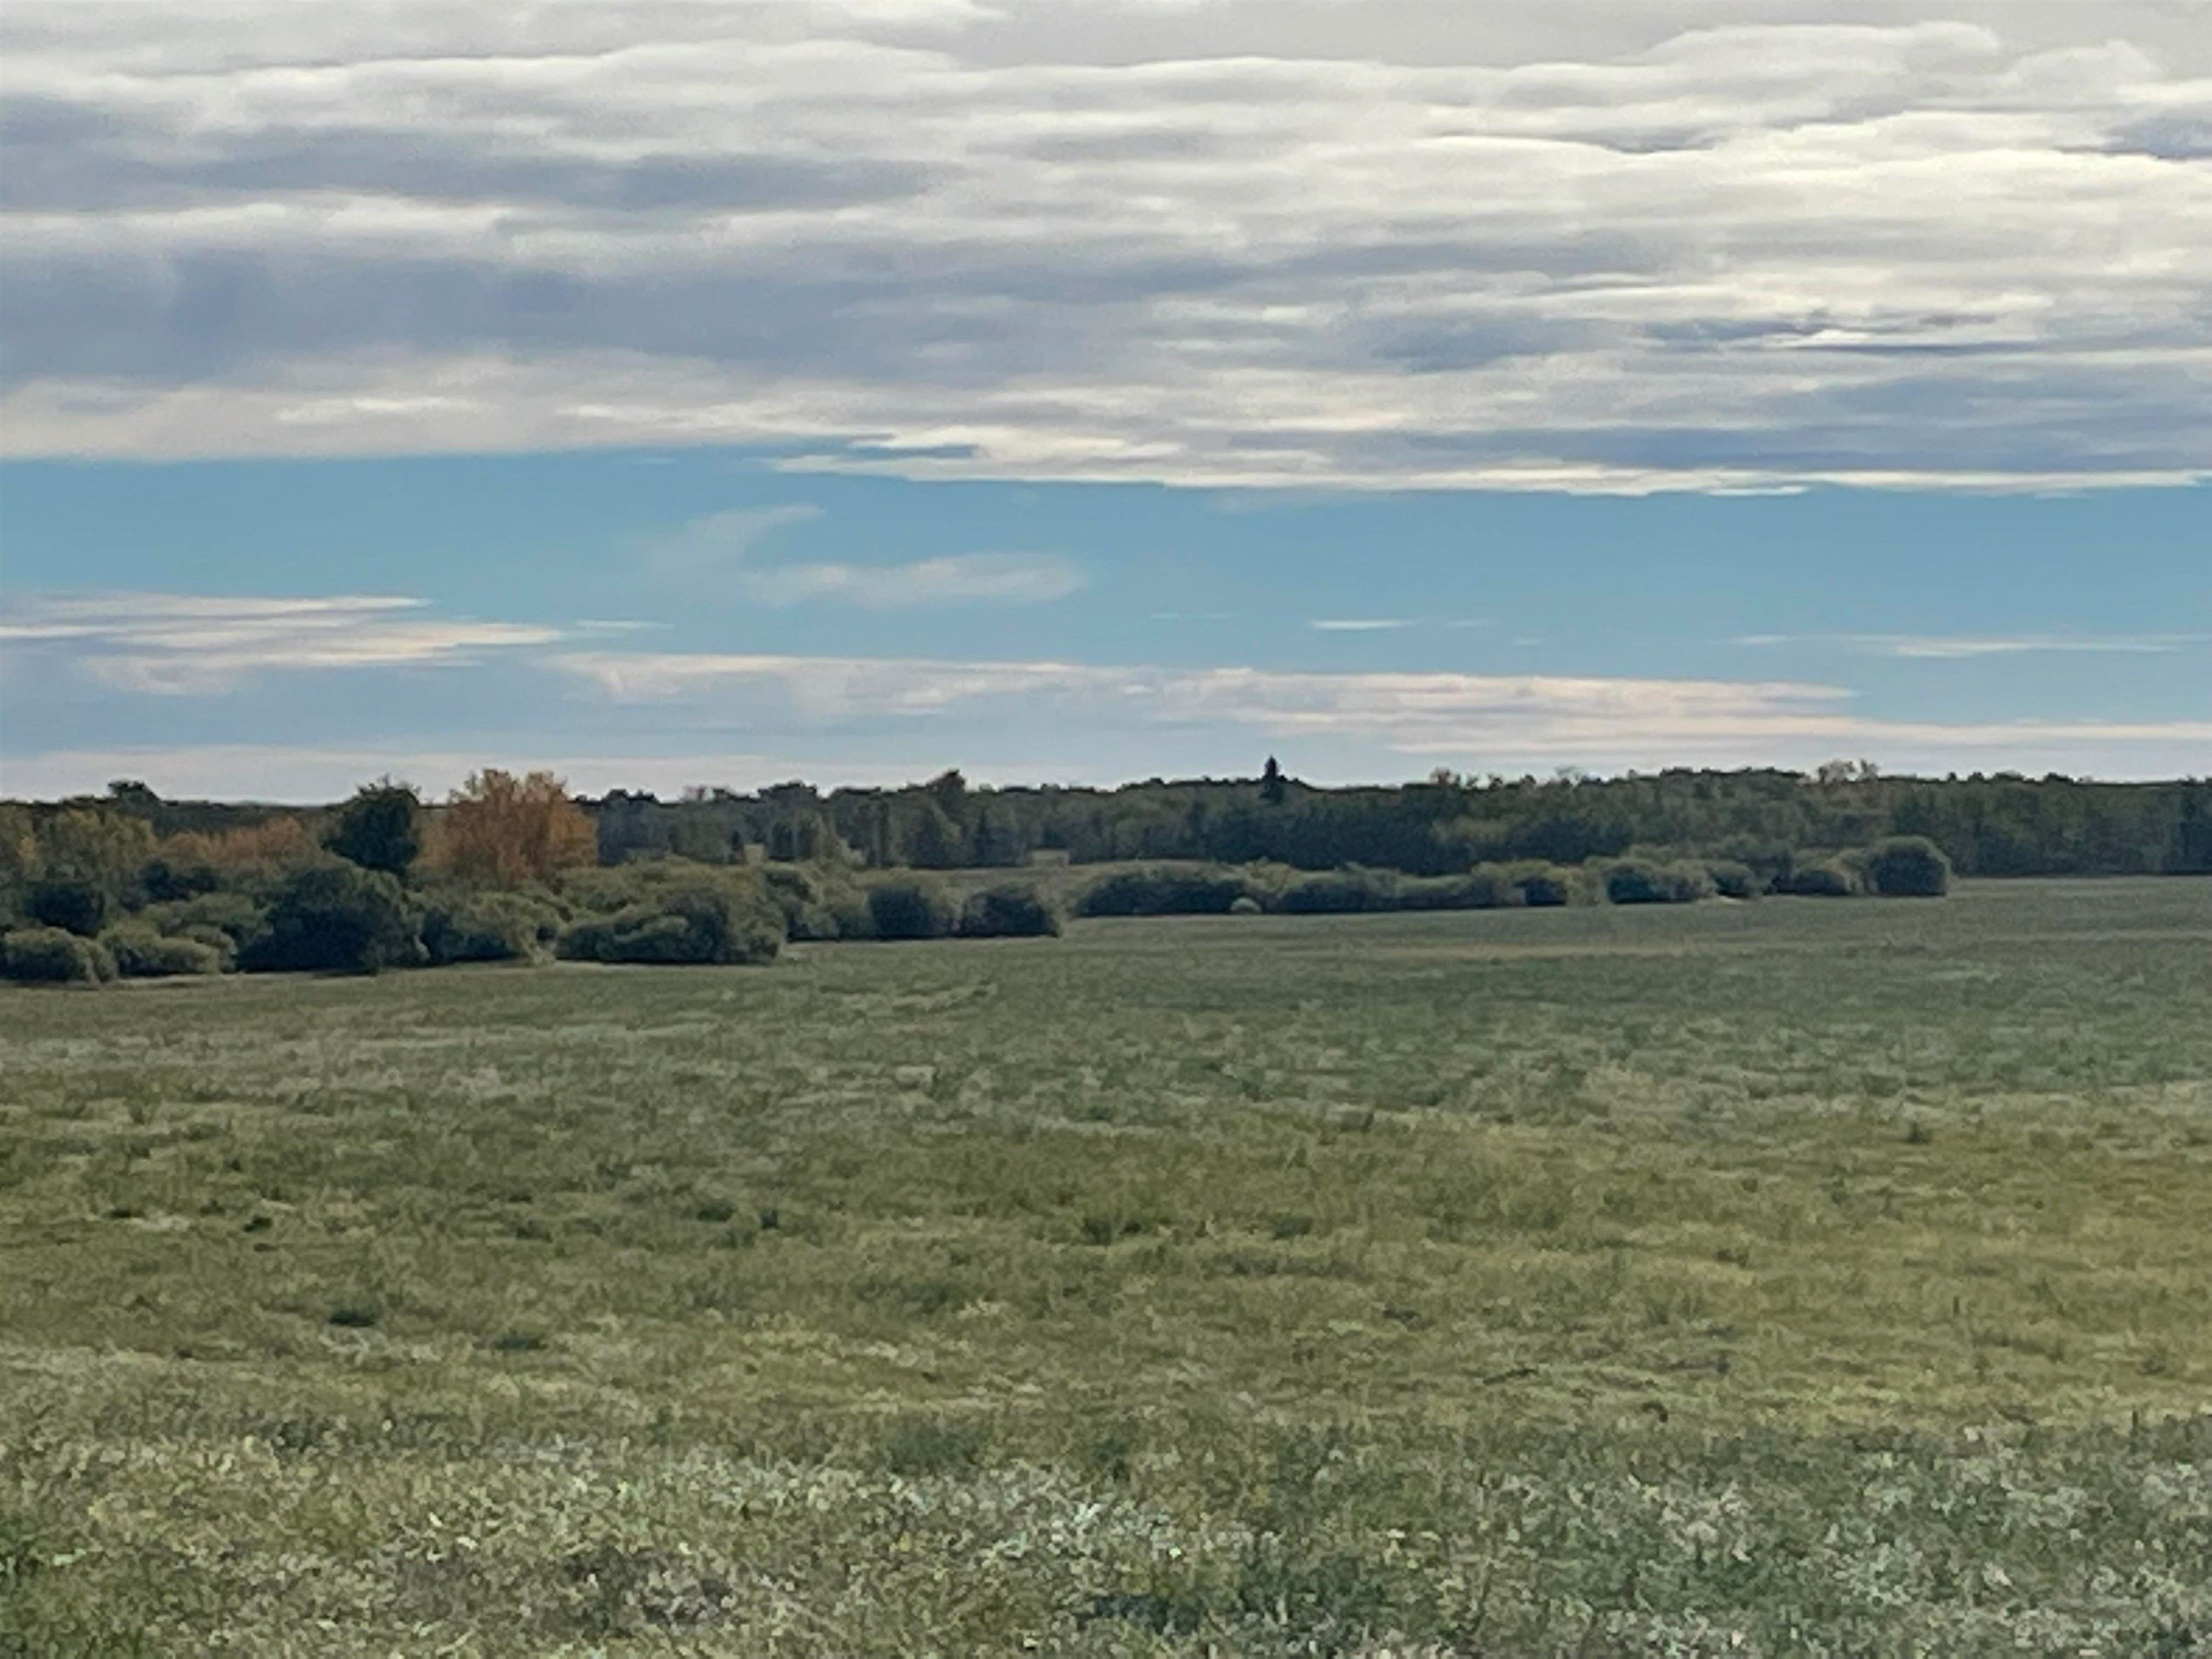 Main Photo: RR 230 Twp 492: Rural Leduc County Rural Land/Vacant Lot for sale : MLS®# E4263882